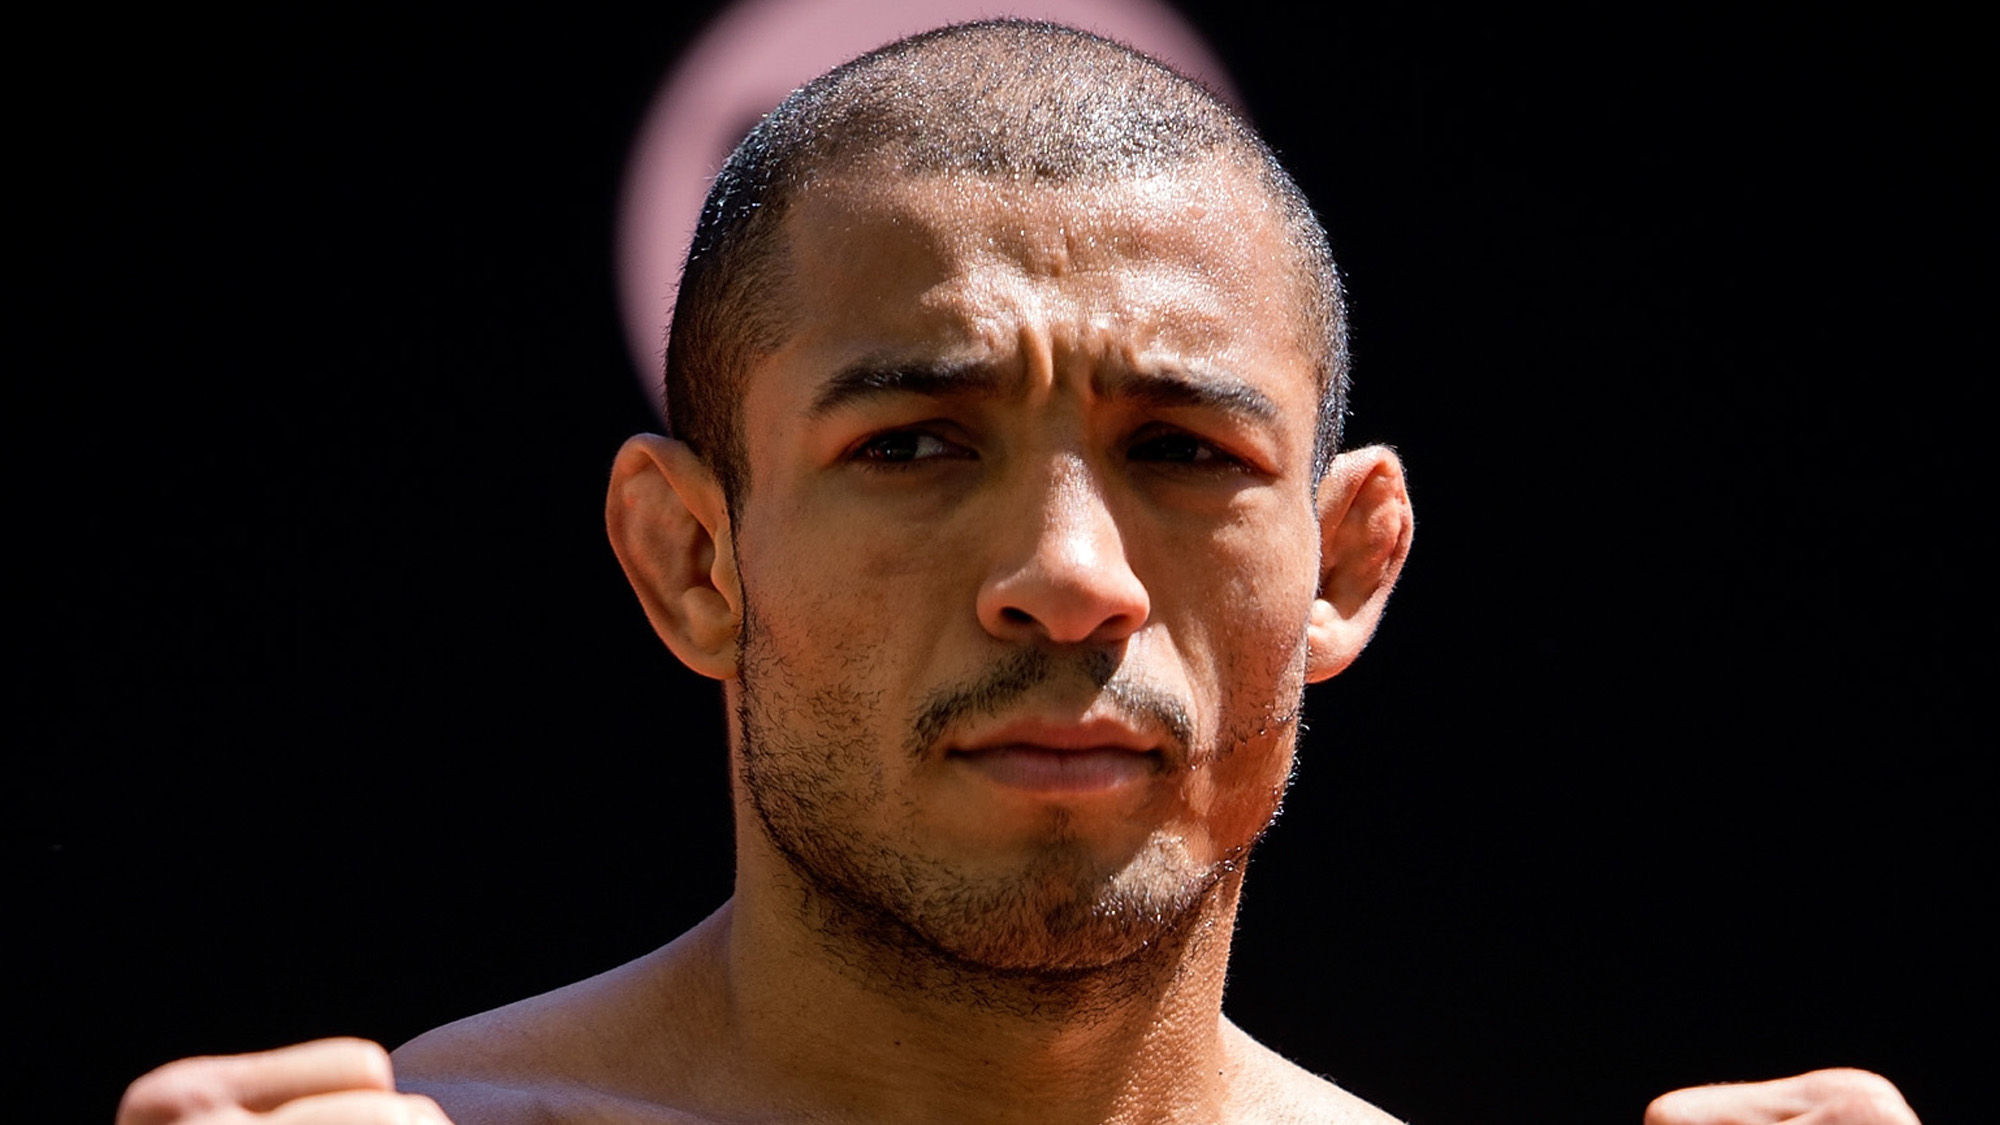 Jose Aldo Explains Why He Turned Down UFC 196 Fight Against Conor McGregor